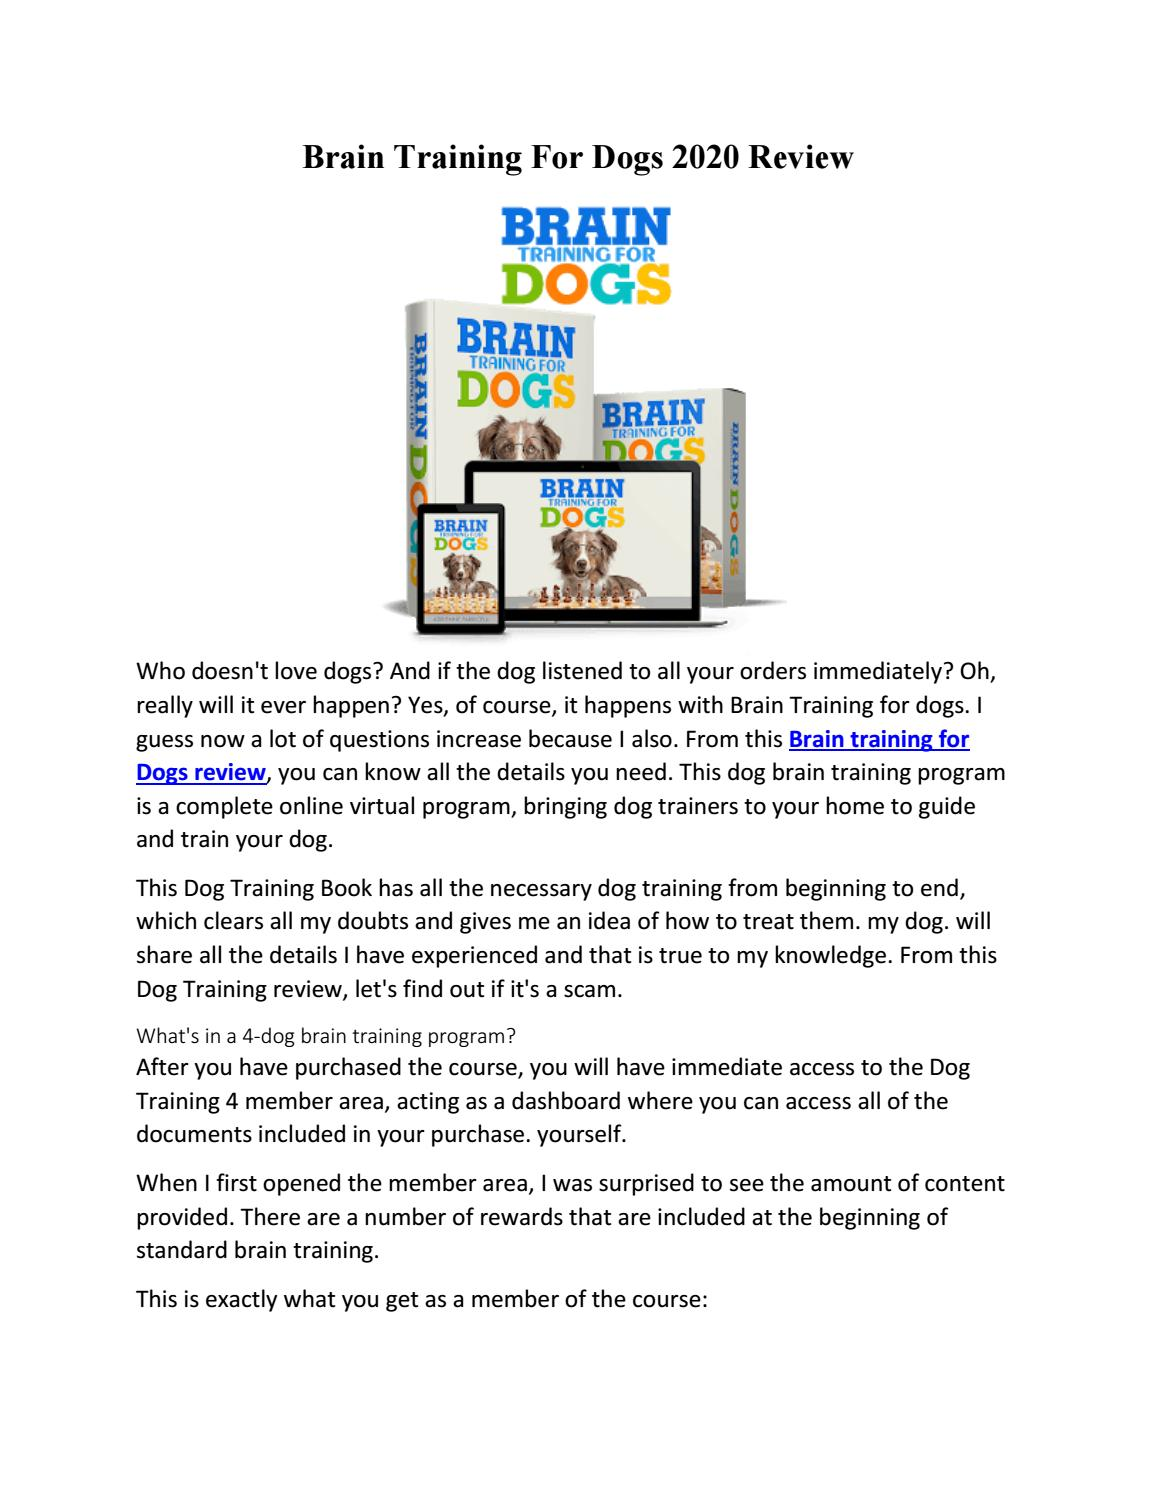 Warranty Transfer Form Brain Training 4 Dogs